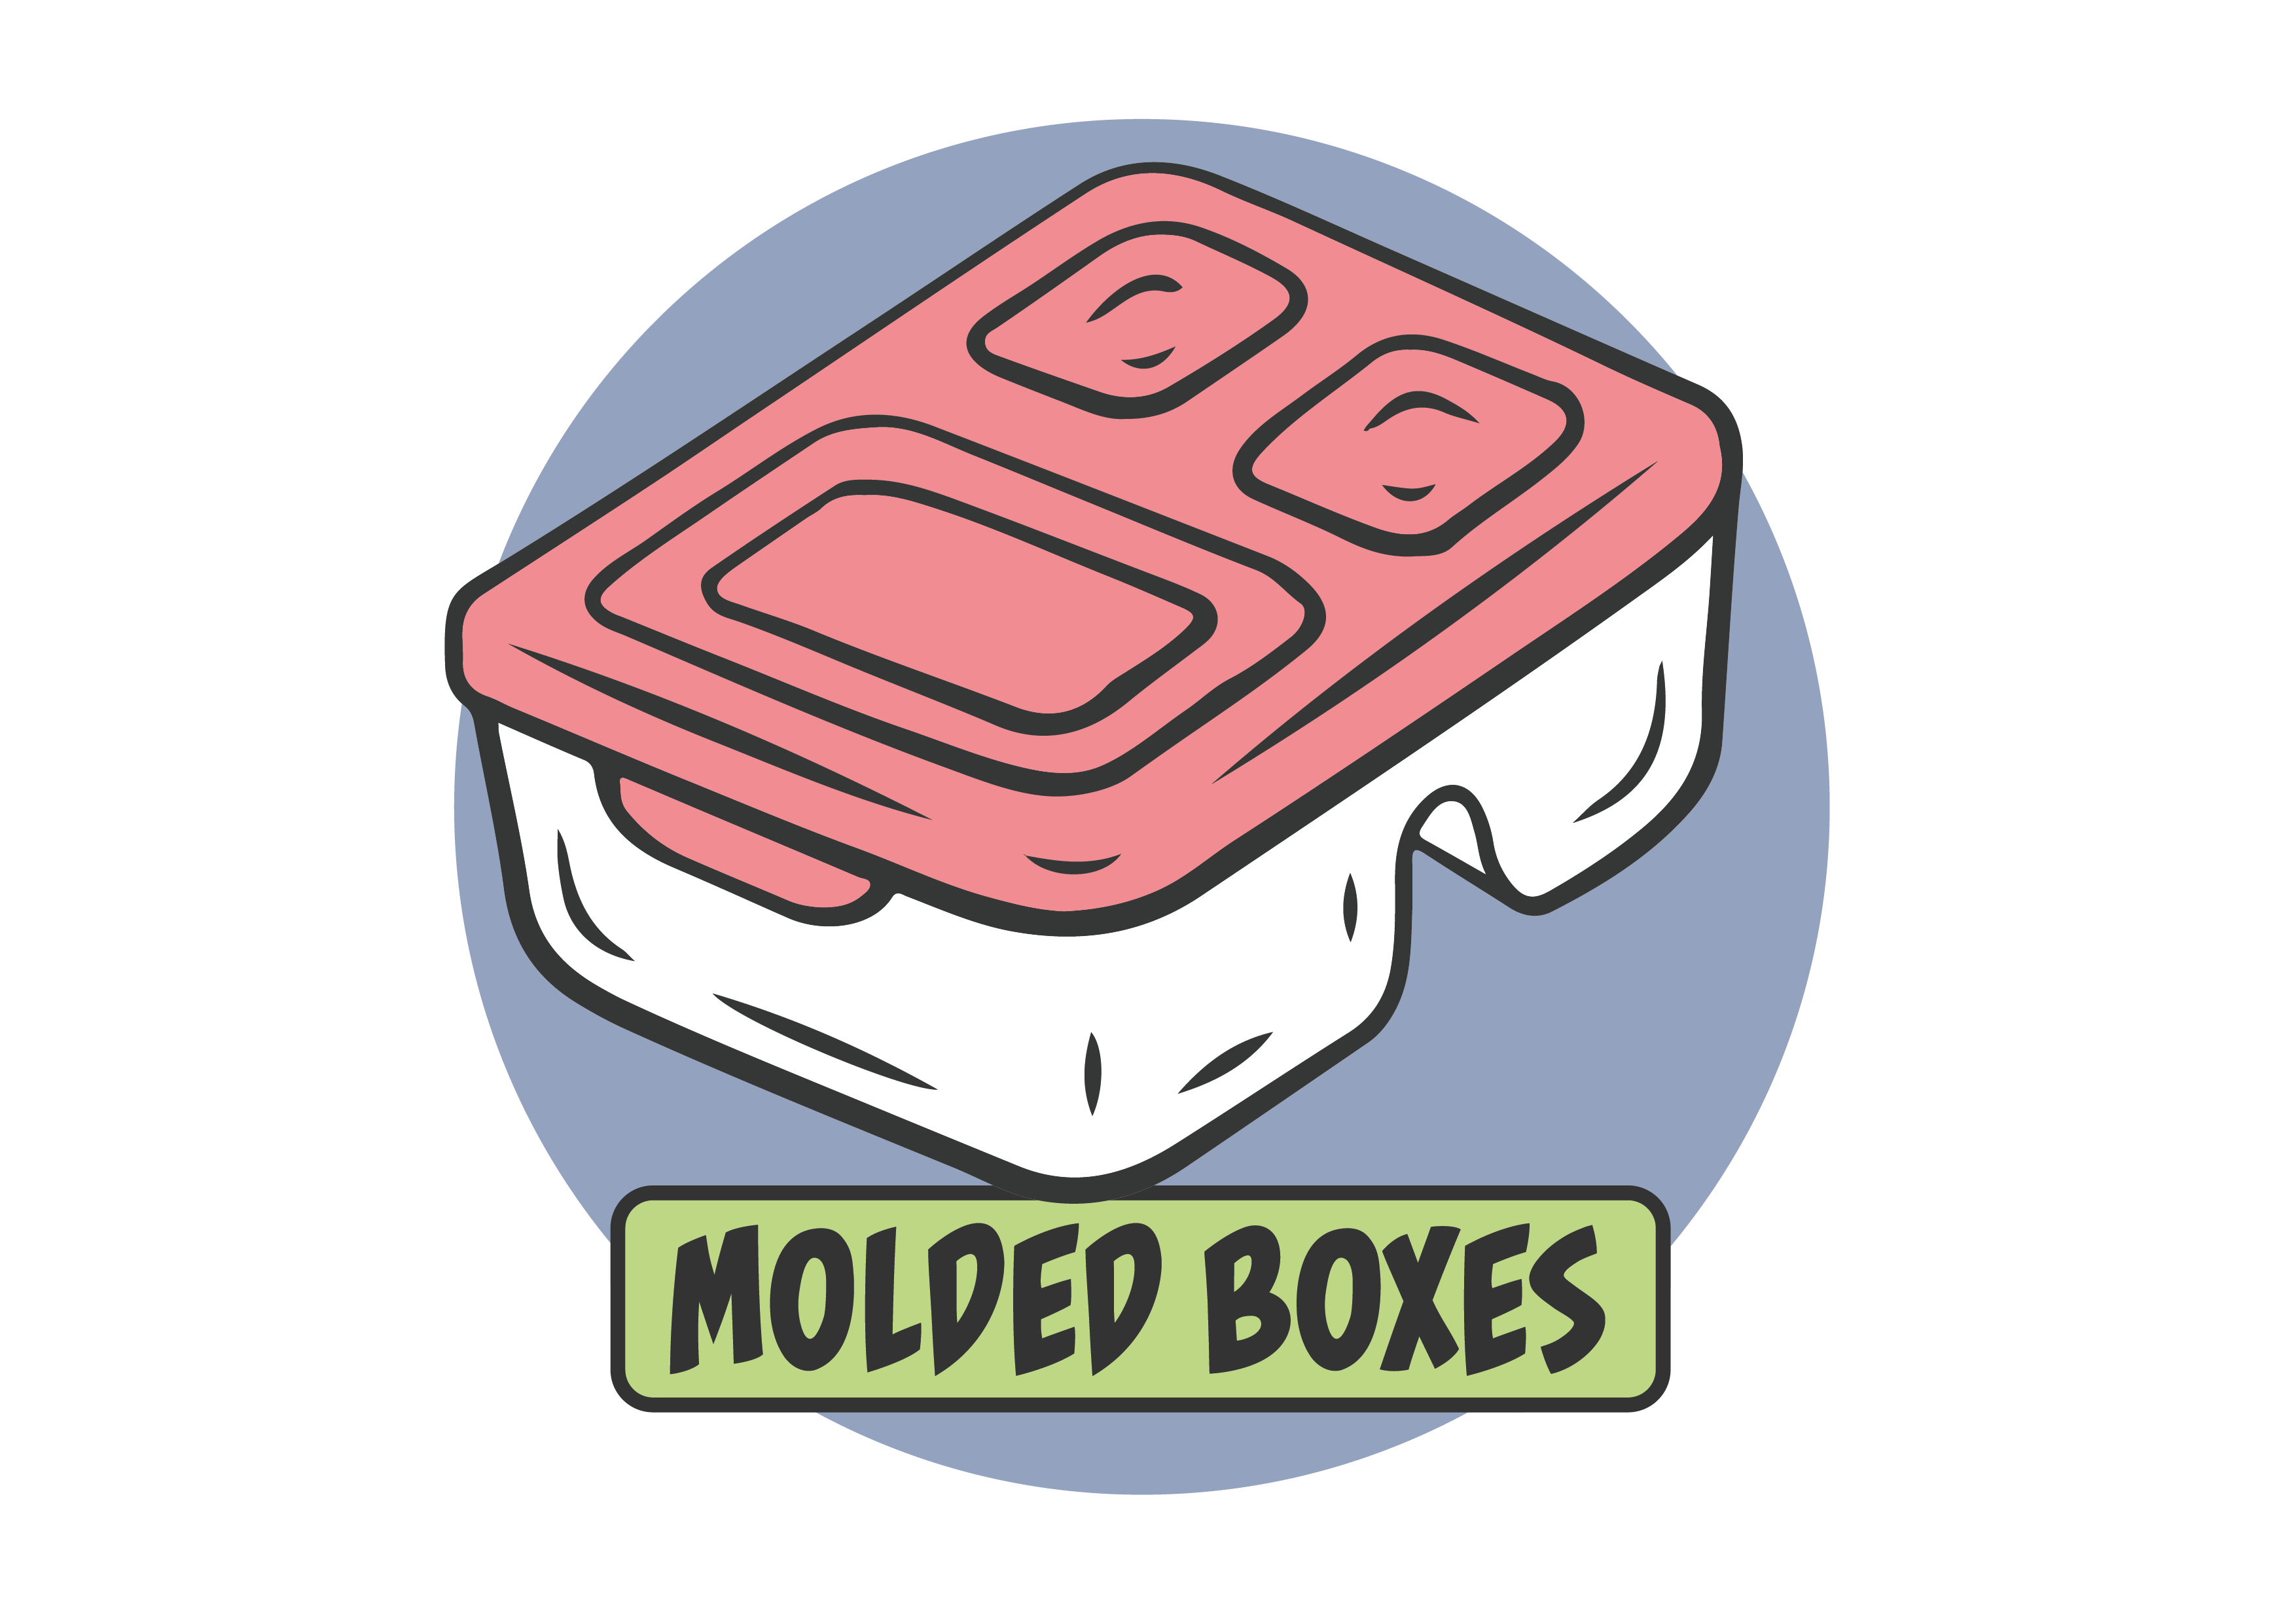 Molded boxes-01